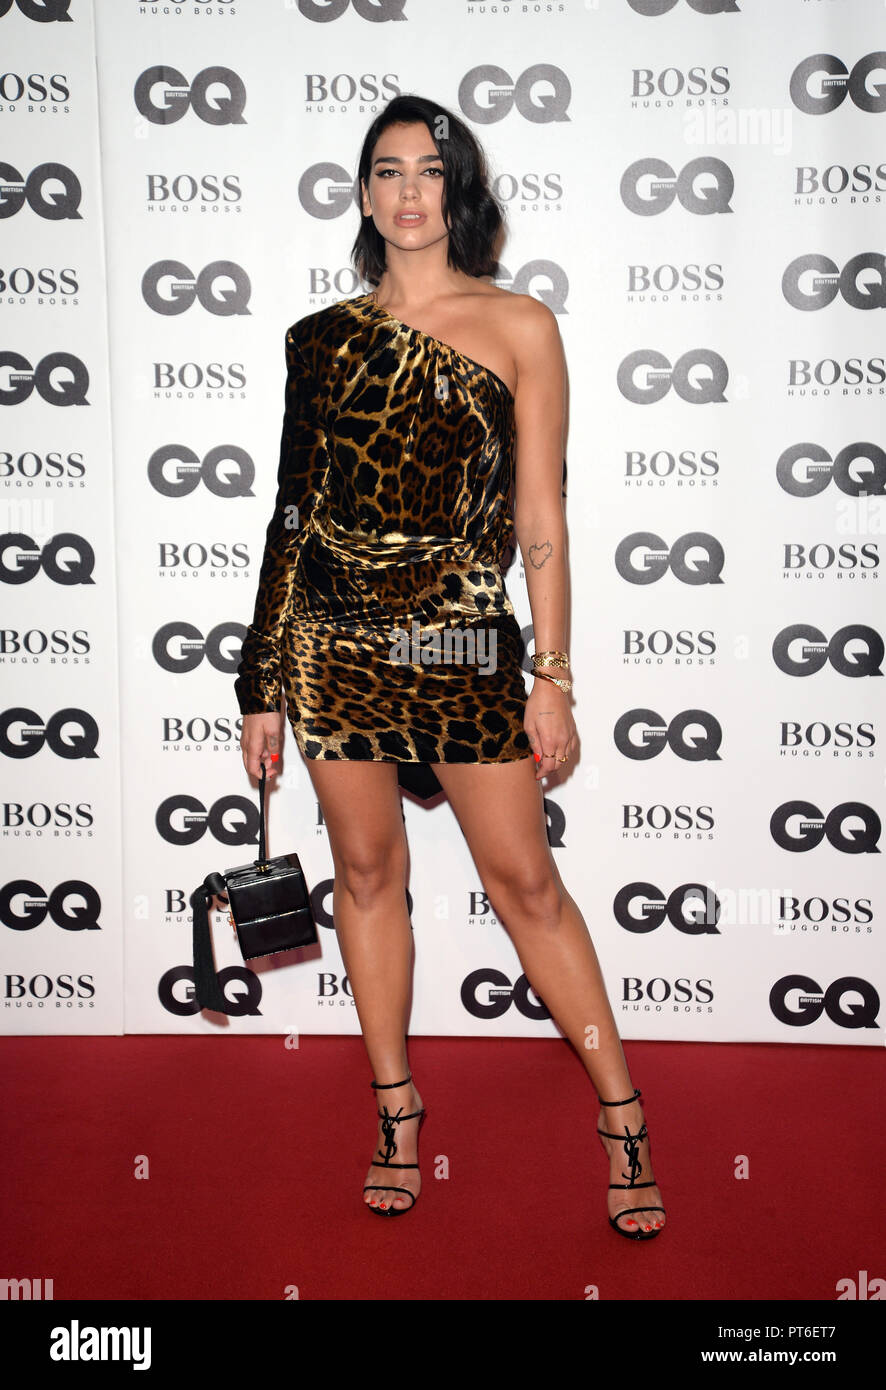 GQ Men Of The Year Awards at The Tate Modern  Featuring: Dua Lipa Where: London, United Kingdom When: 05 Sep 2018 Credit: Tony Oudot/WENN - Stock Image